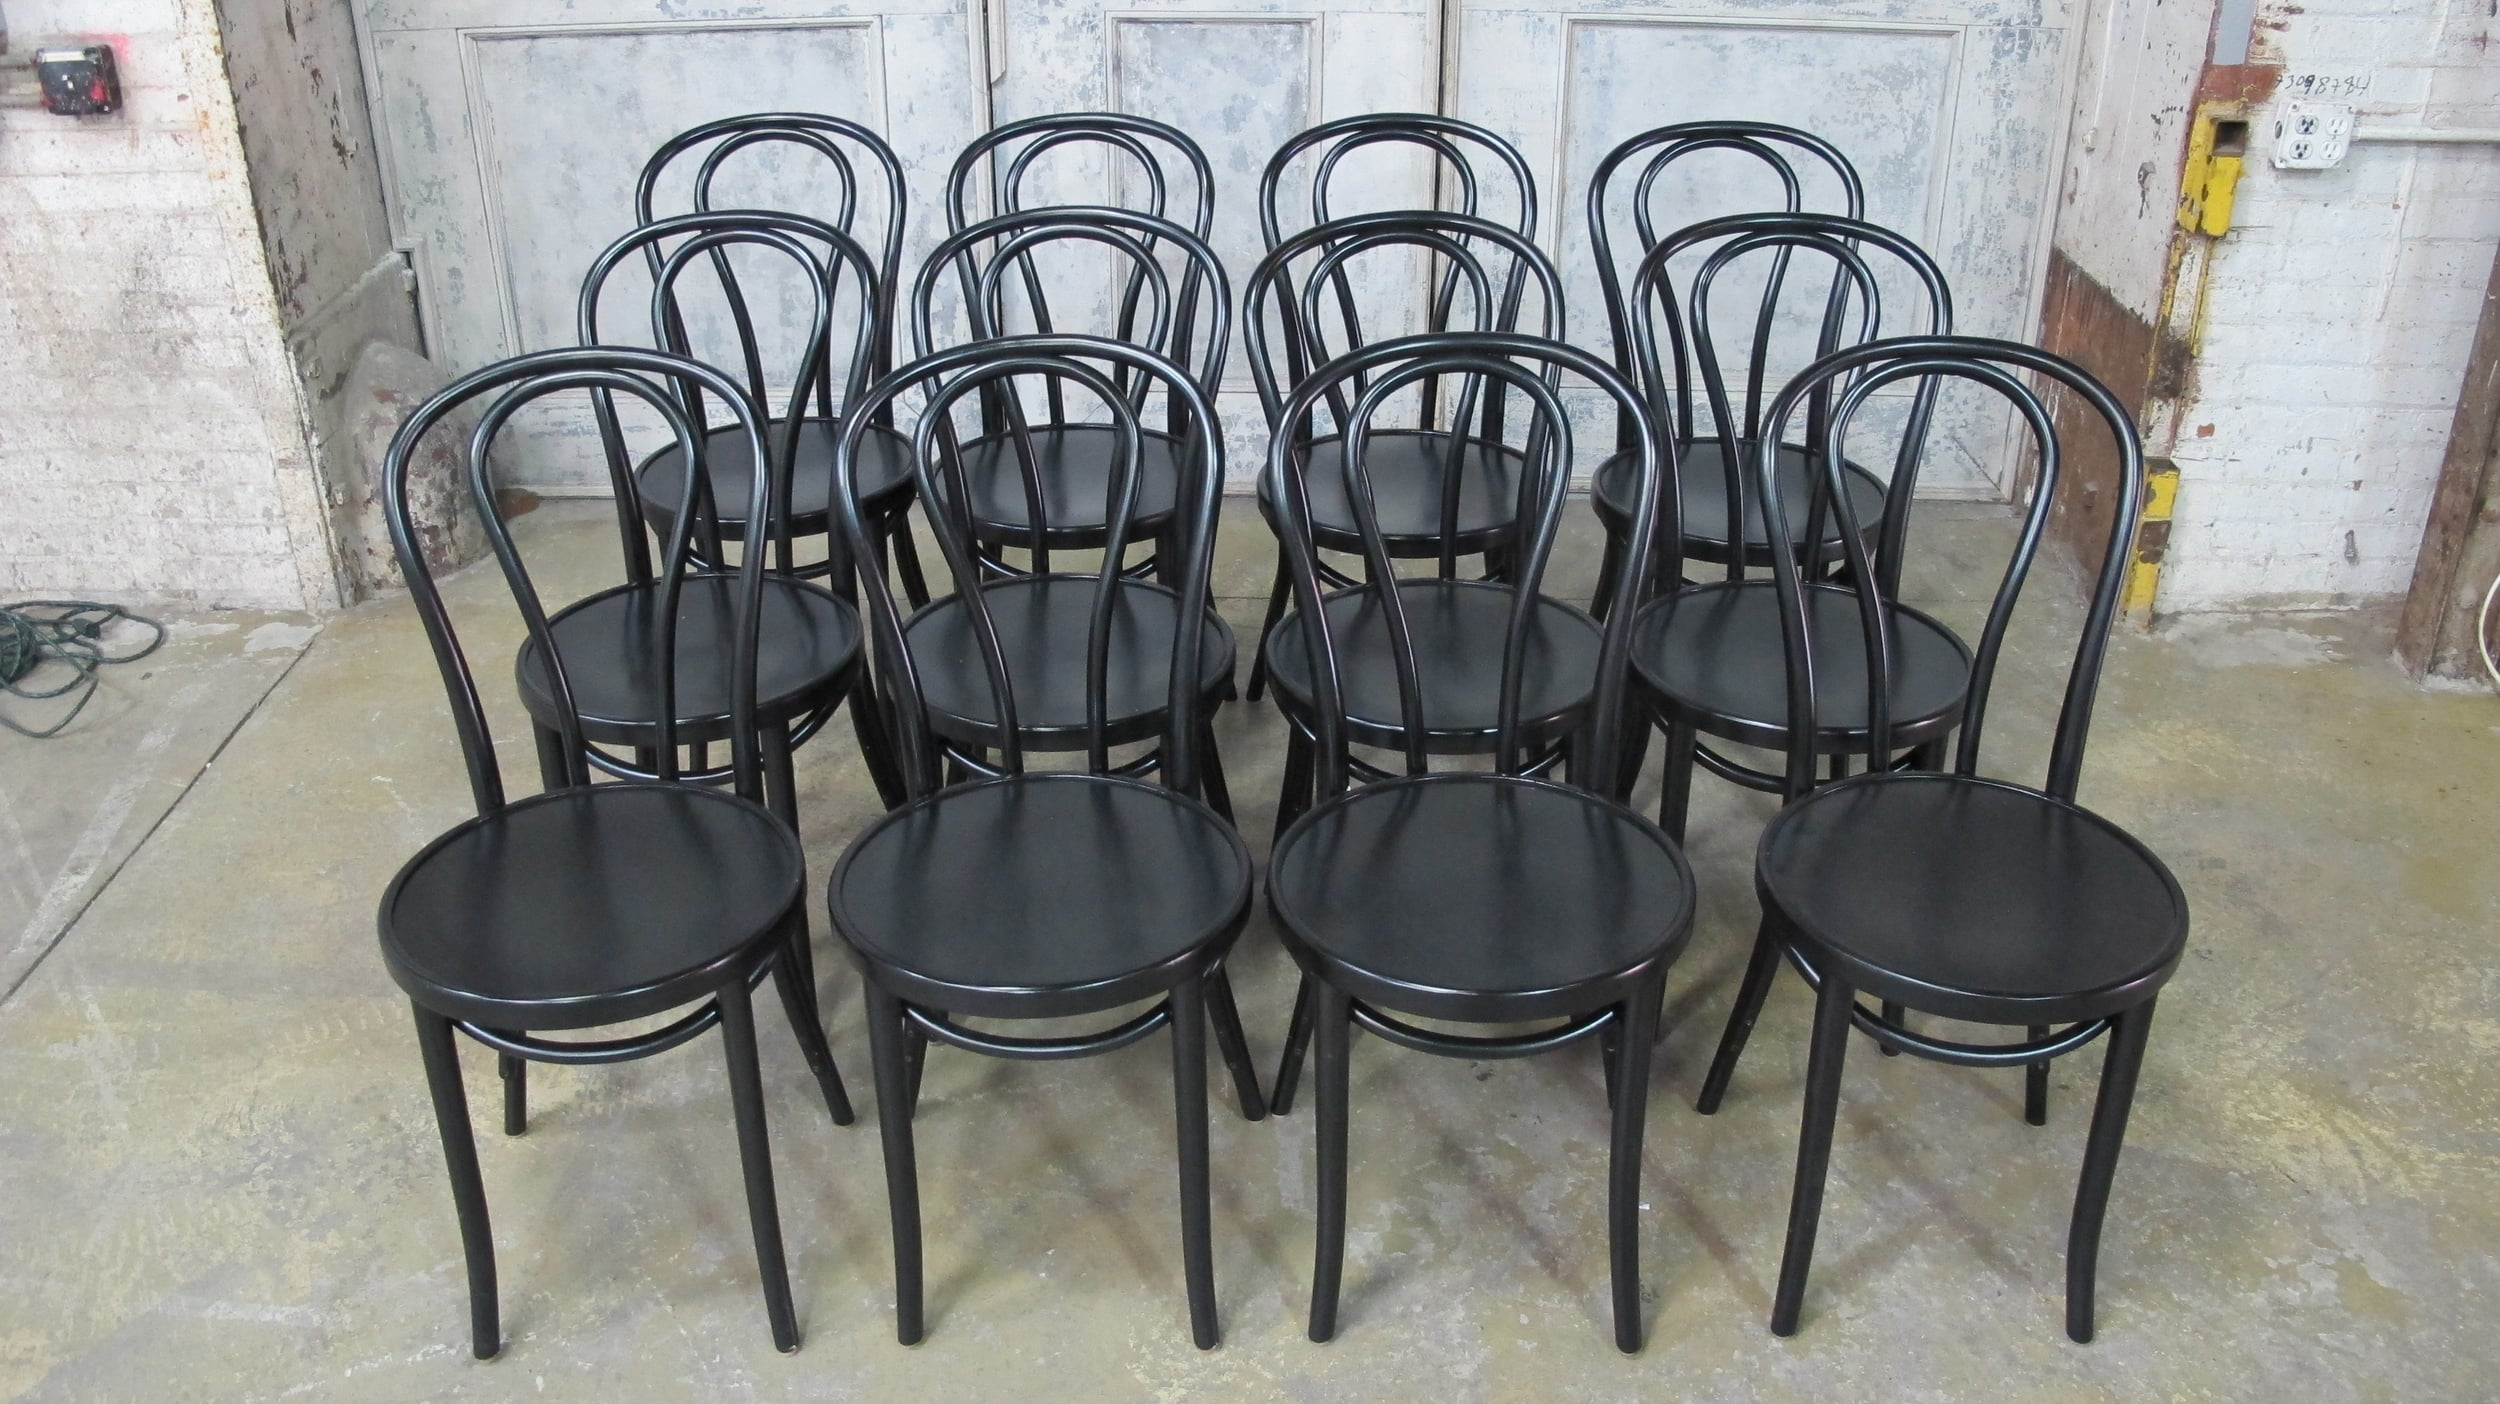 12 black MJ cafe chairs $30/ea